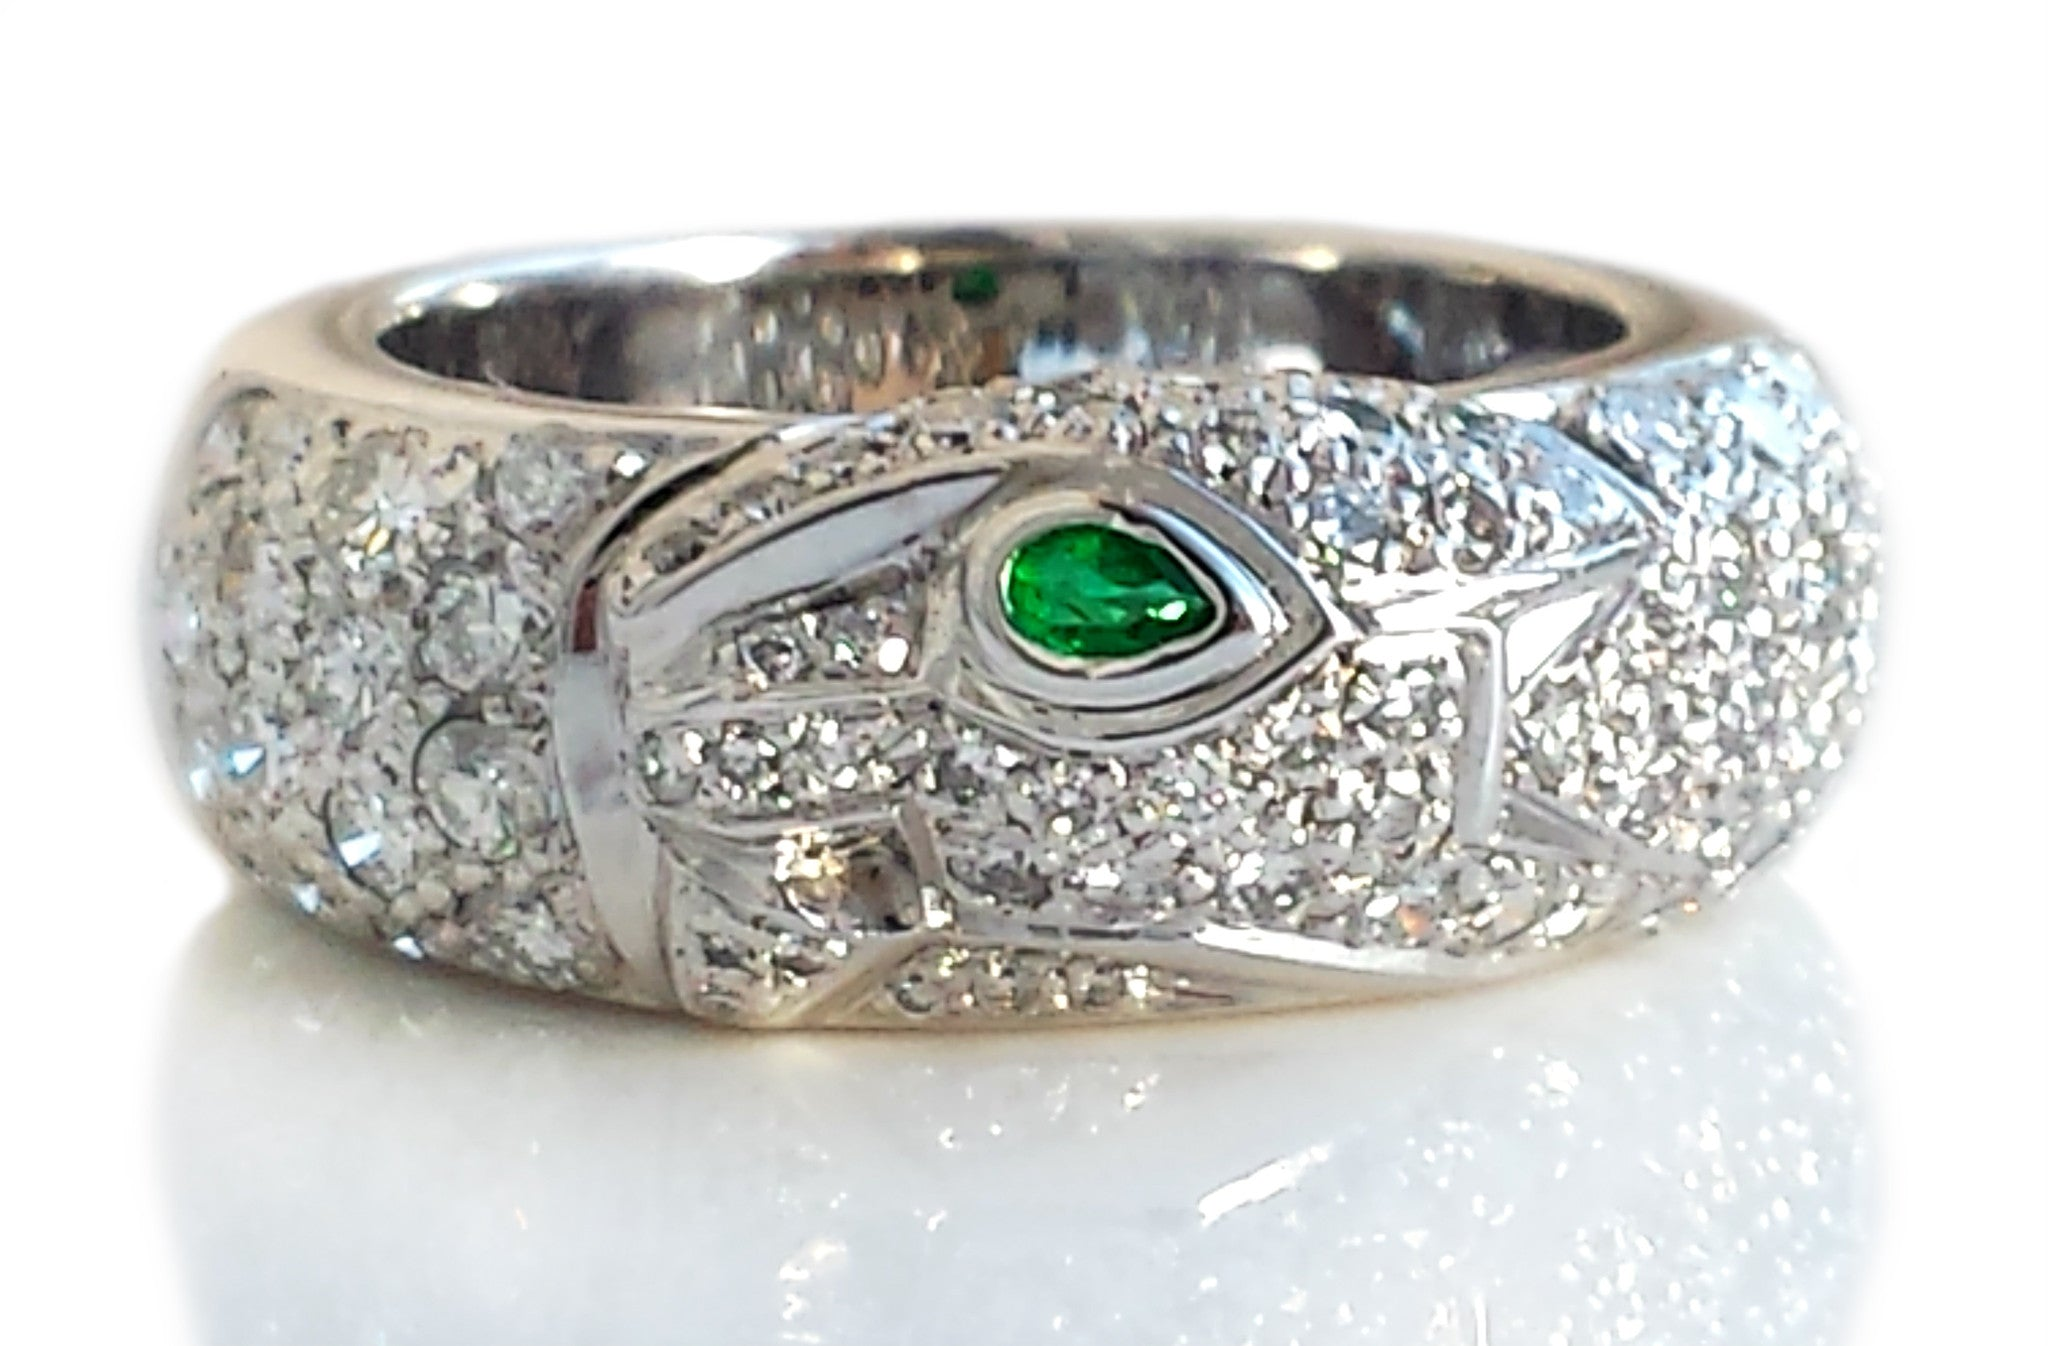 cartier skinner and a bentley emerald diamond ring art deco london jewellery